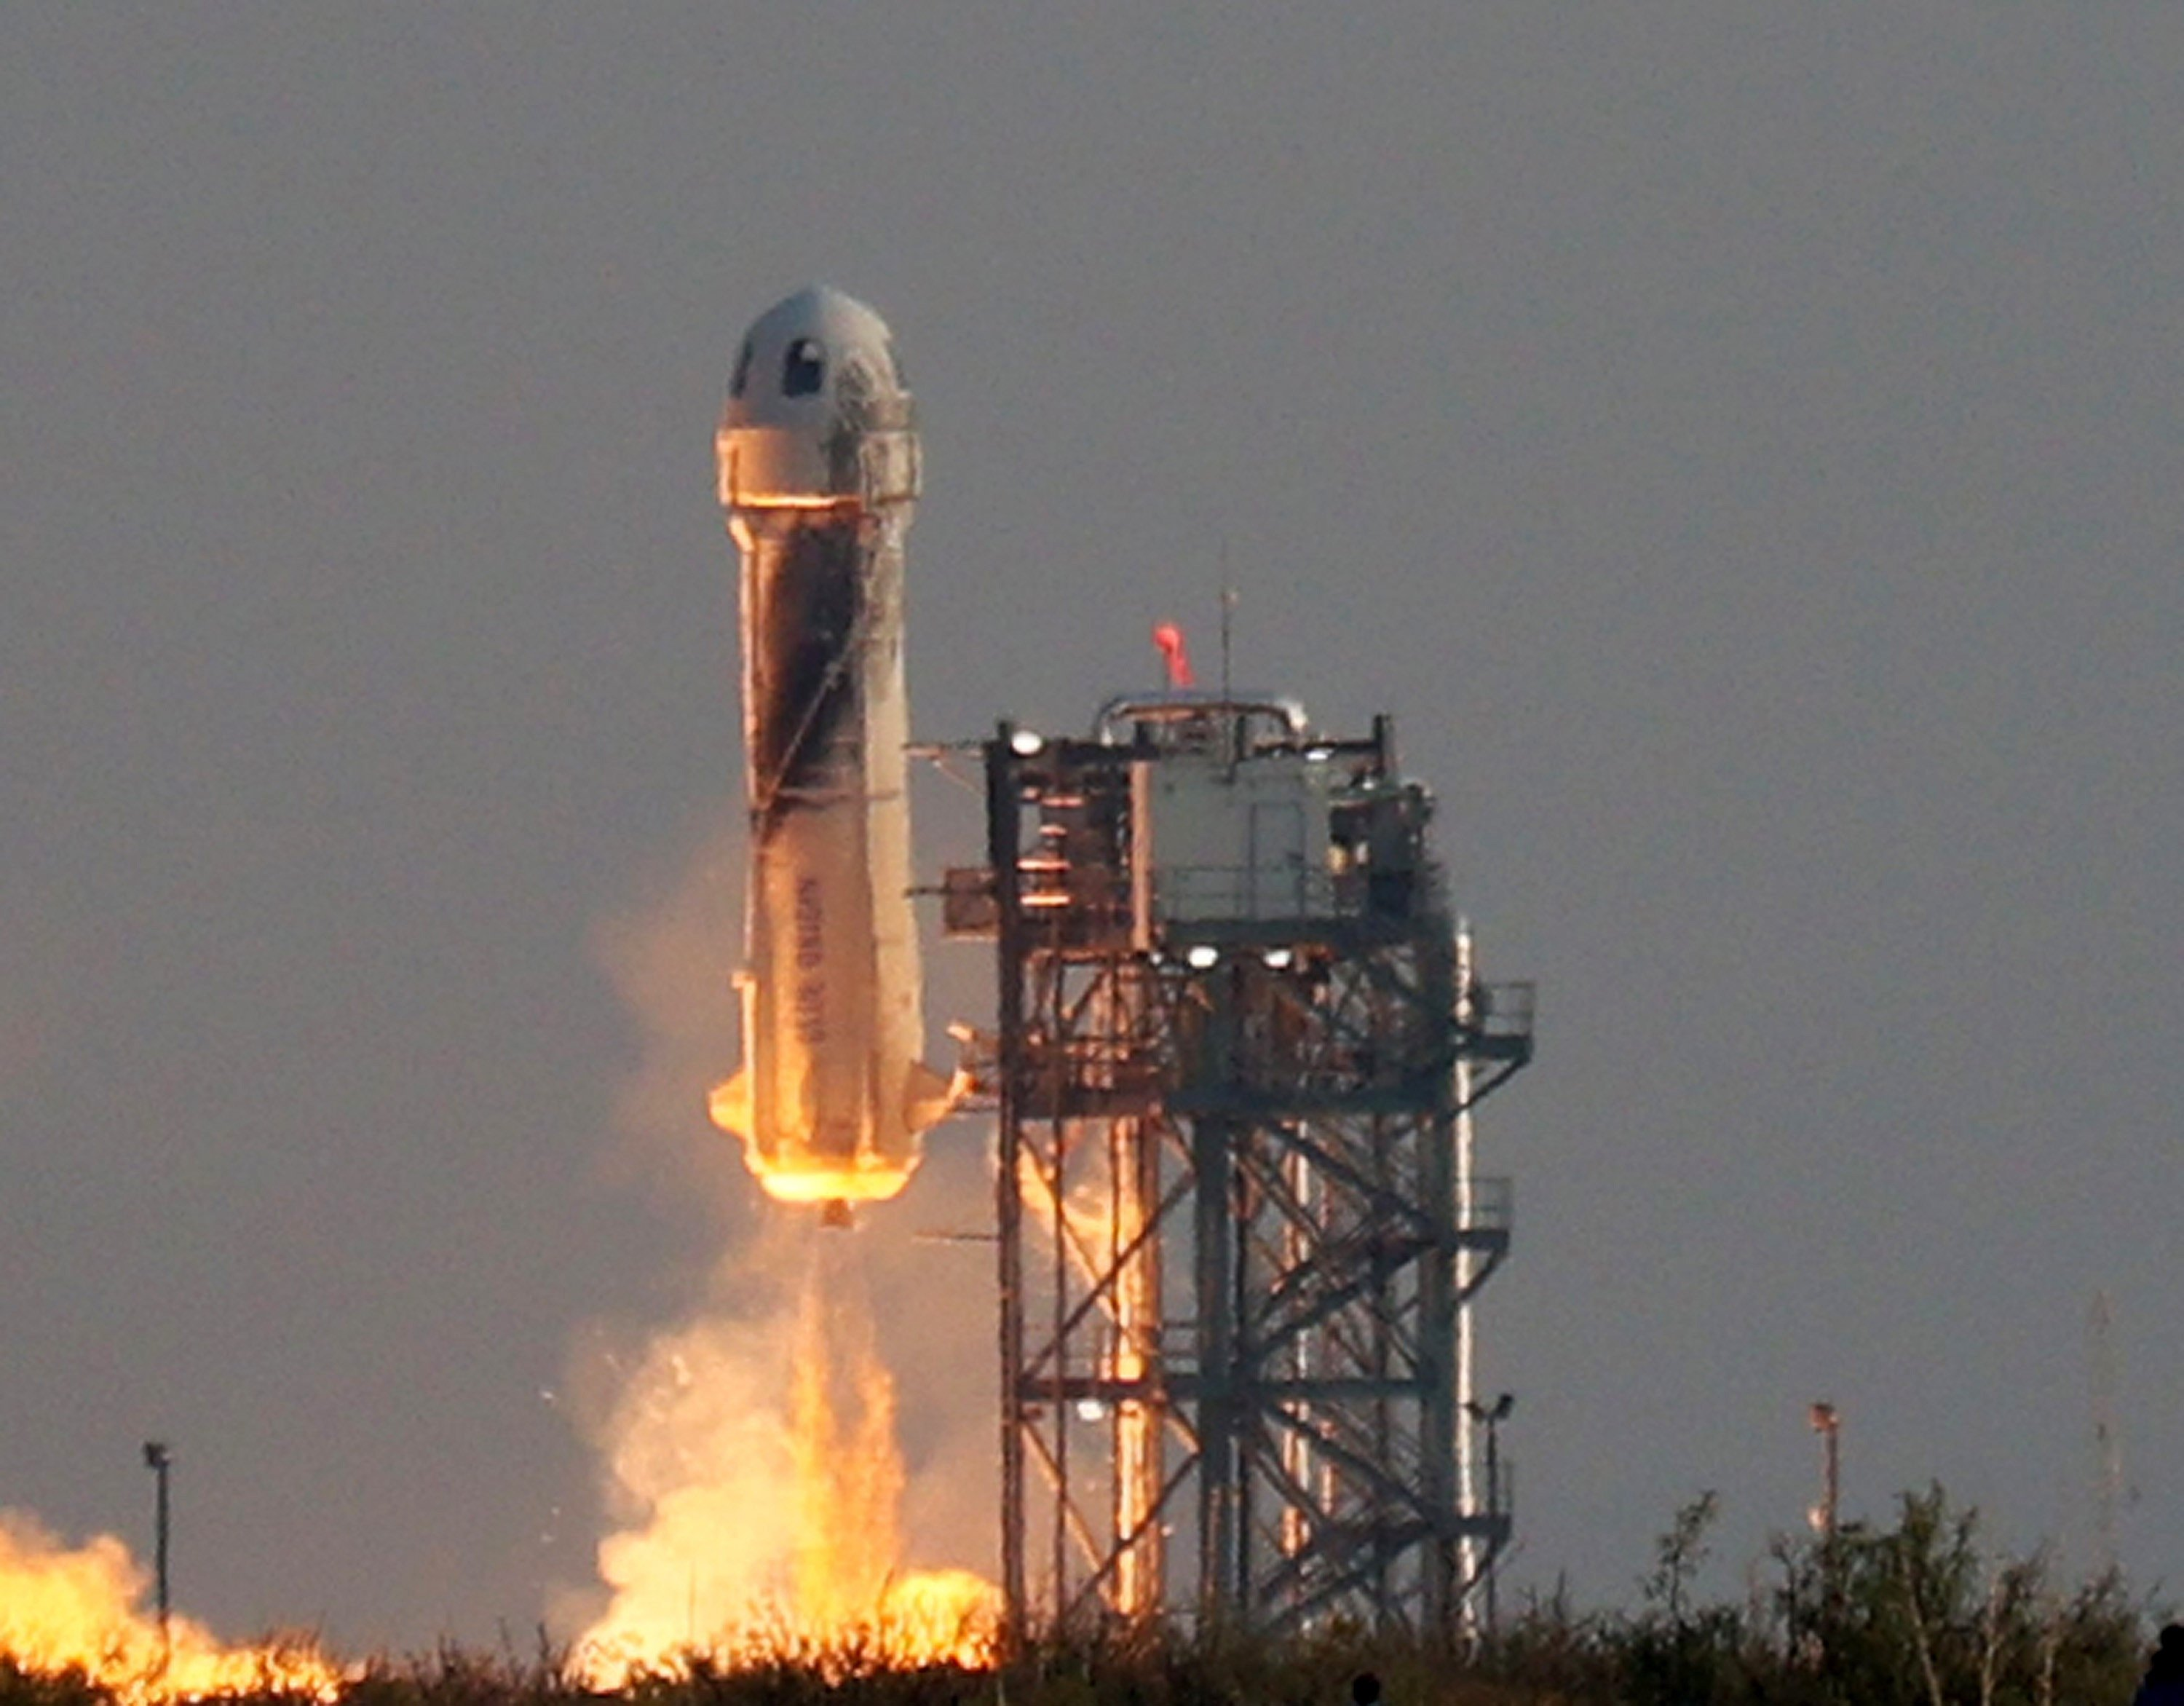 Blue Origin's New Shepard lifts off from the launch pad carrying Jeff Bezos along with his brother Mark Bezos, 18-year-old Oliver Daemen and 82-year-old Wally Funk, in Van Horn, Texas, U.S., July 20, 2021. (Joe Raedle/Getty Images via AFP)